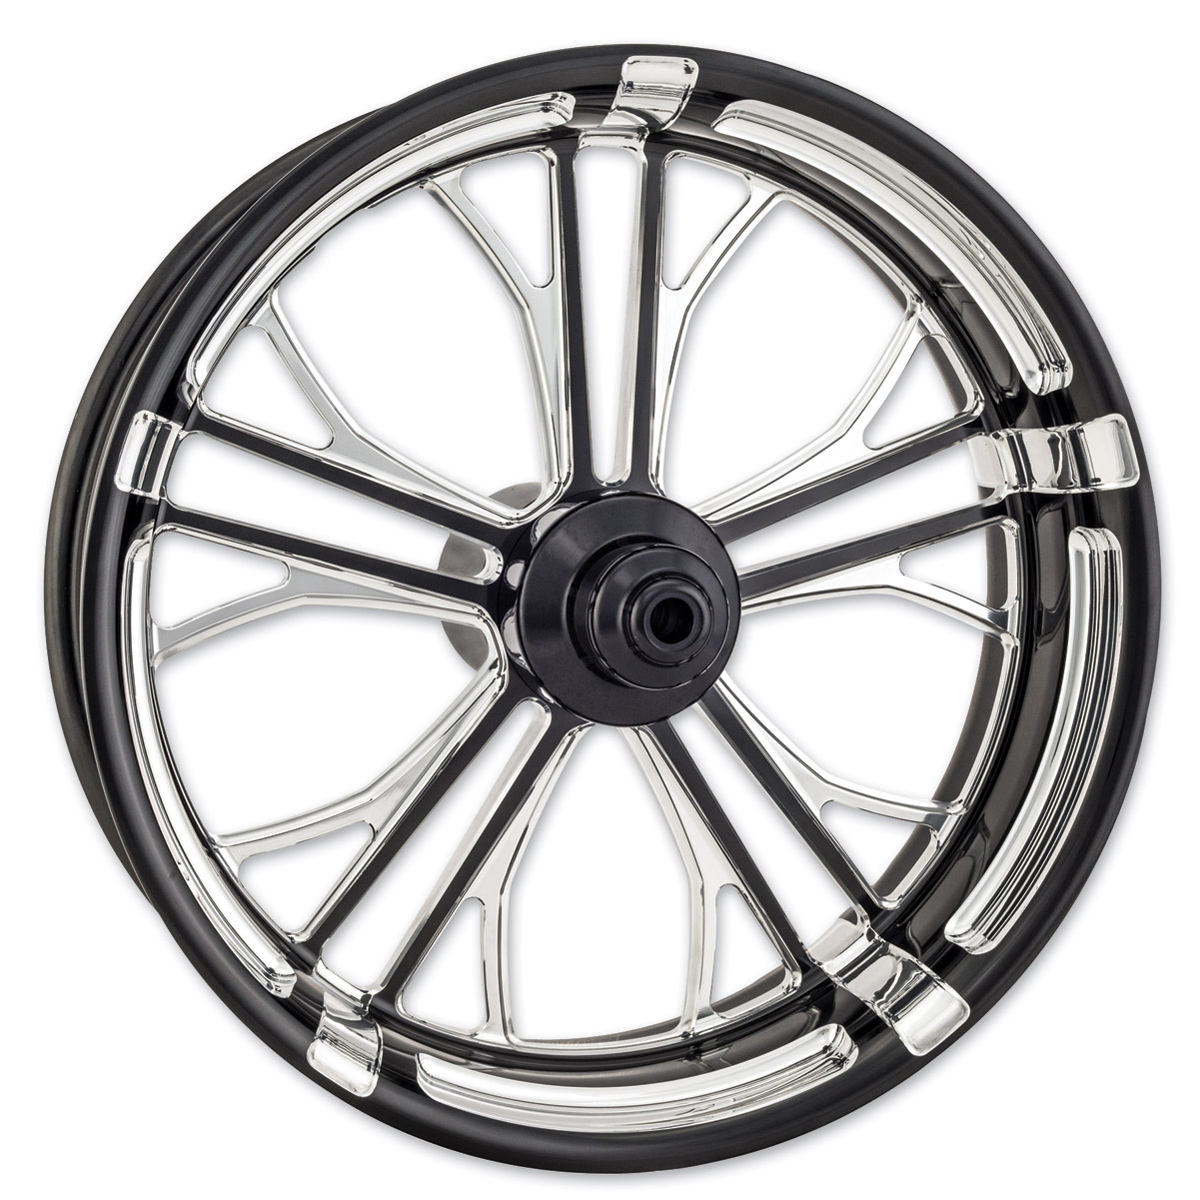 Performance Machine Dixon Platinum Cut Front Wheel 21x3.5 Non-ABS